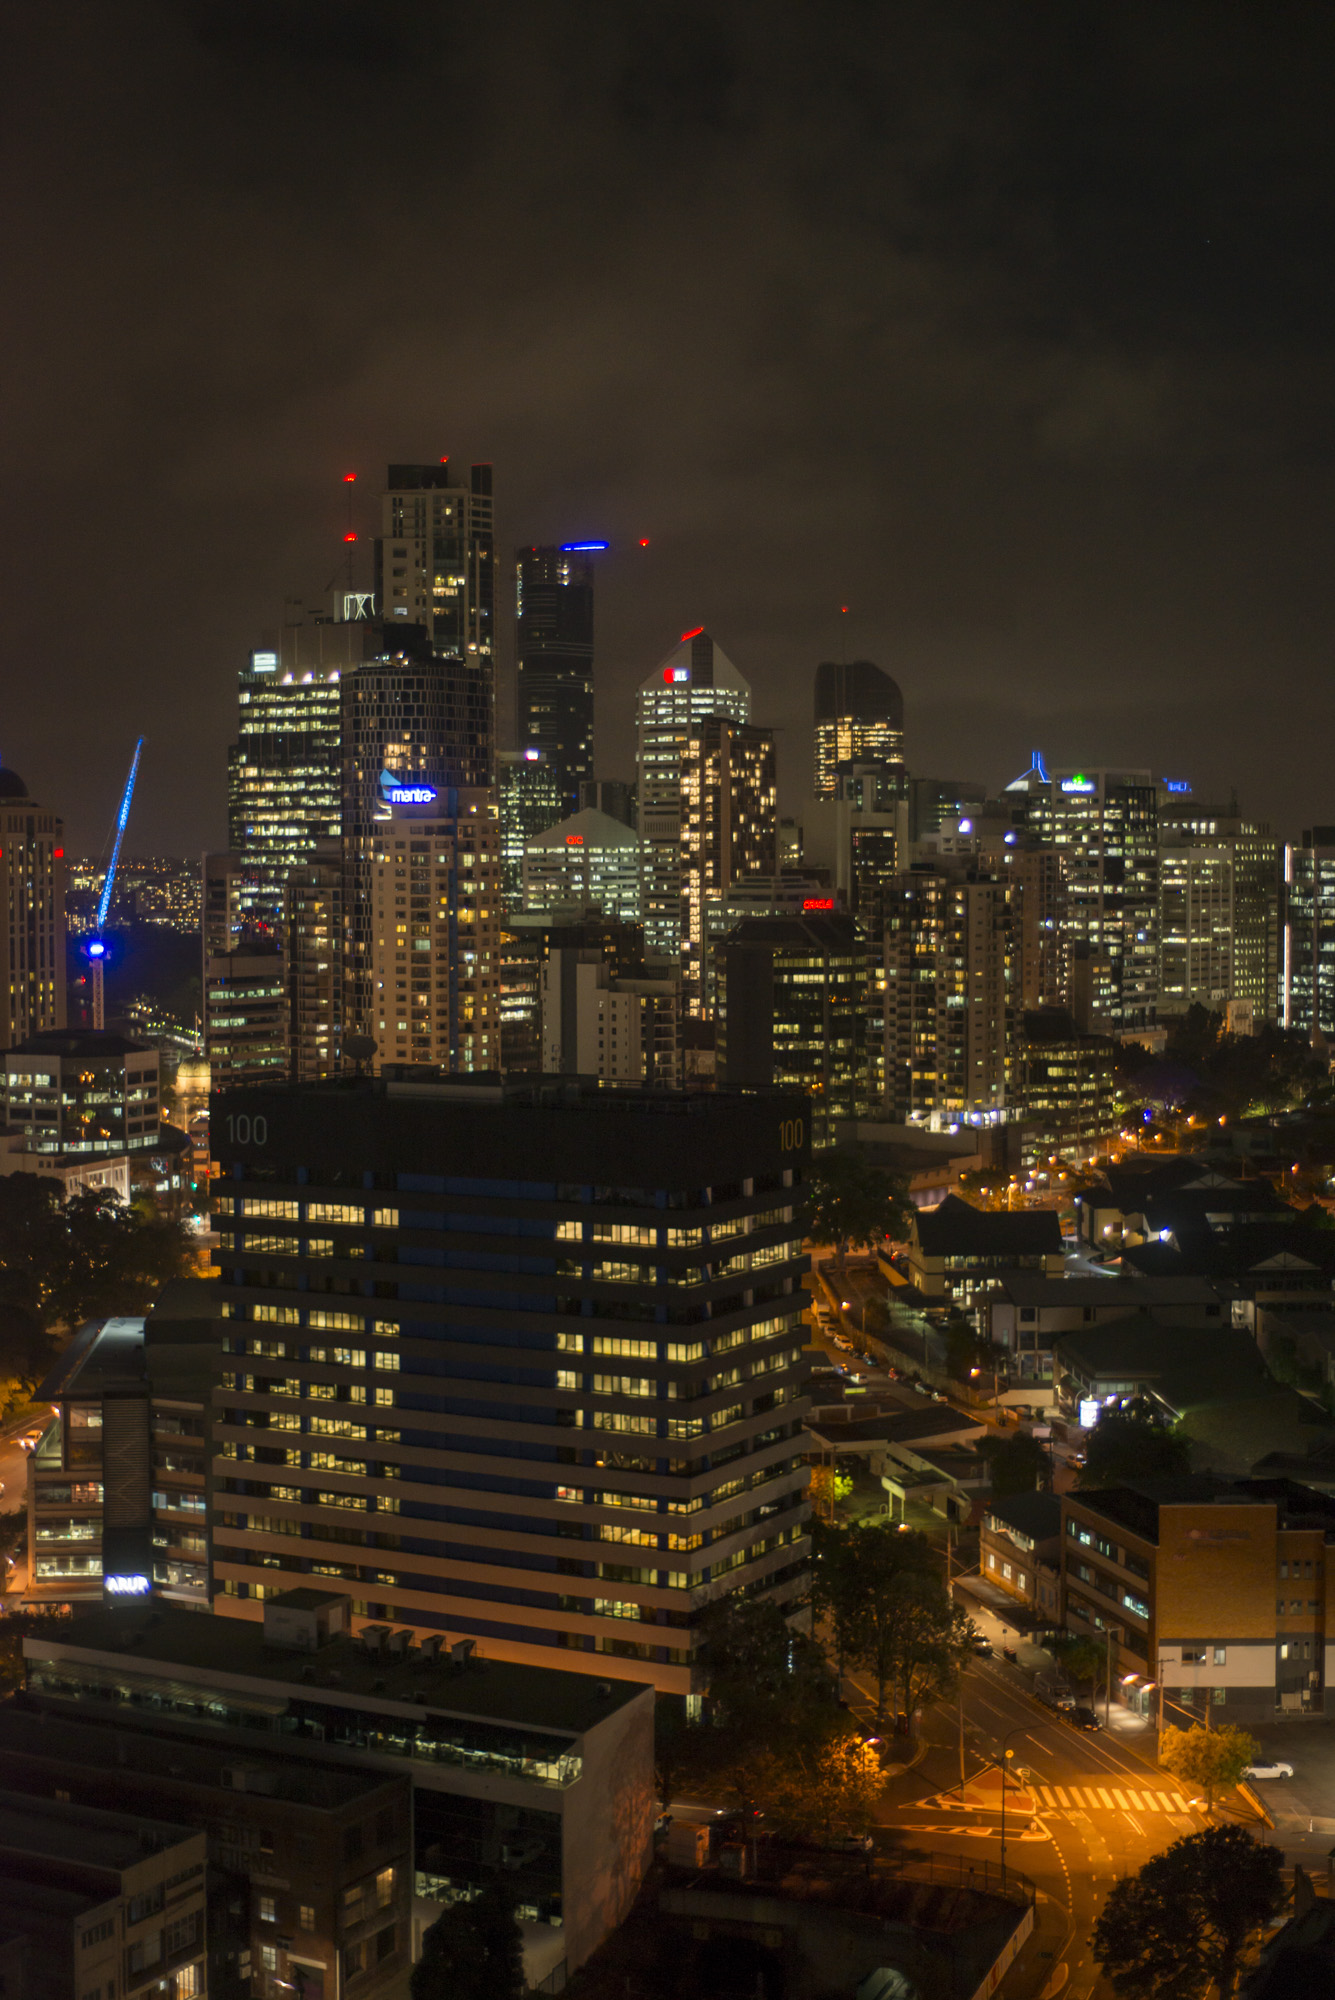 Going to sleep with this view from FV by Peppers in Fortitude Valley